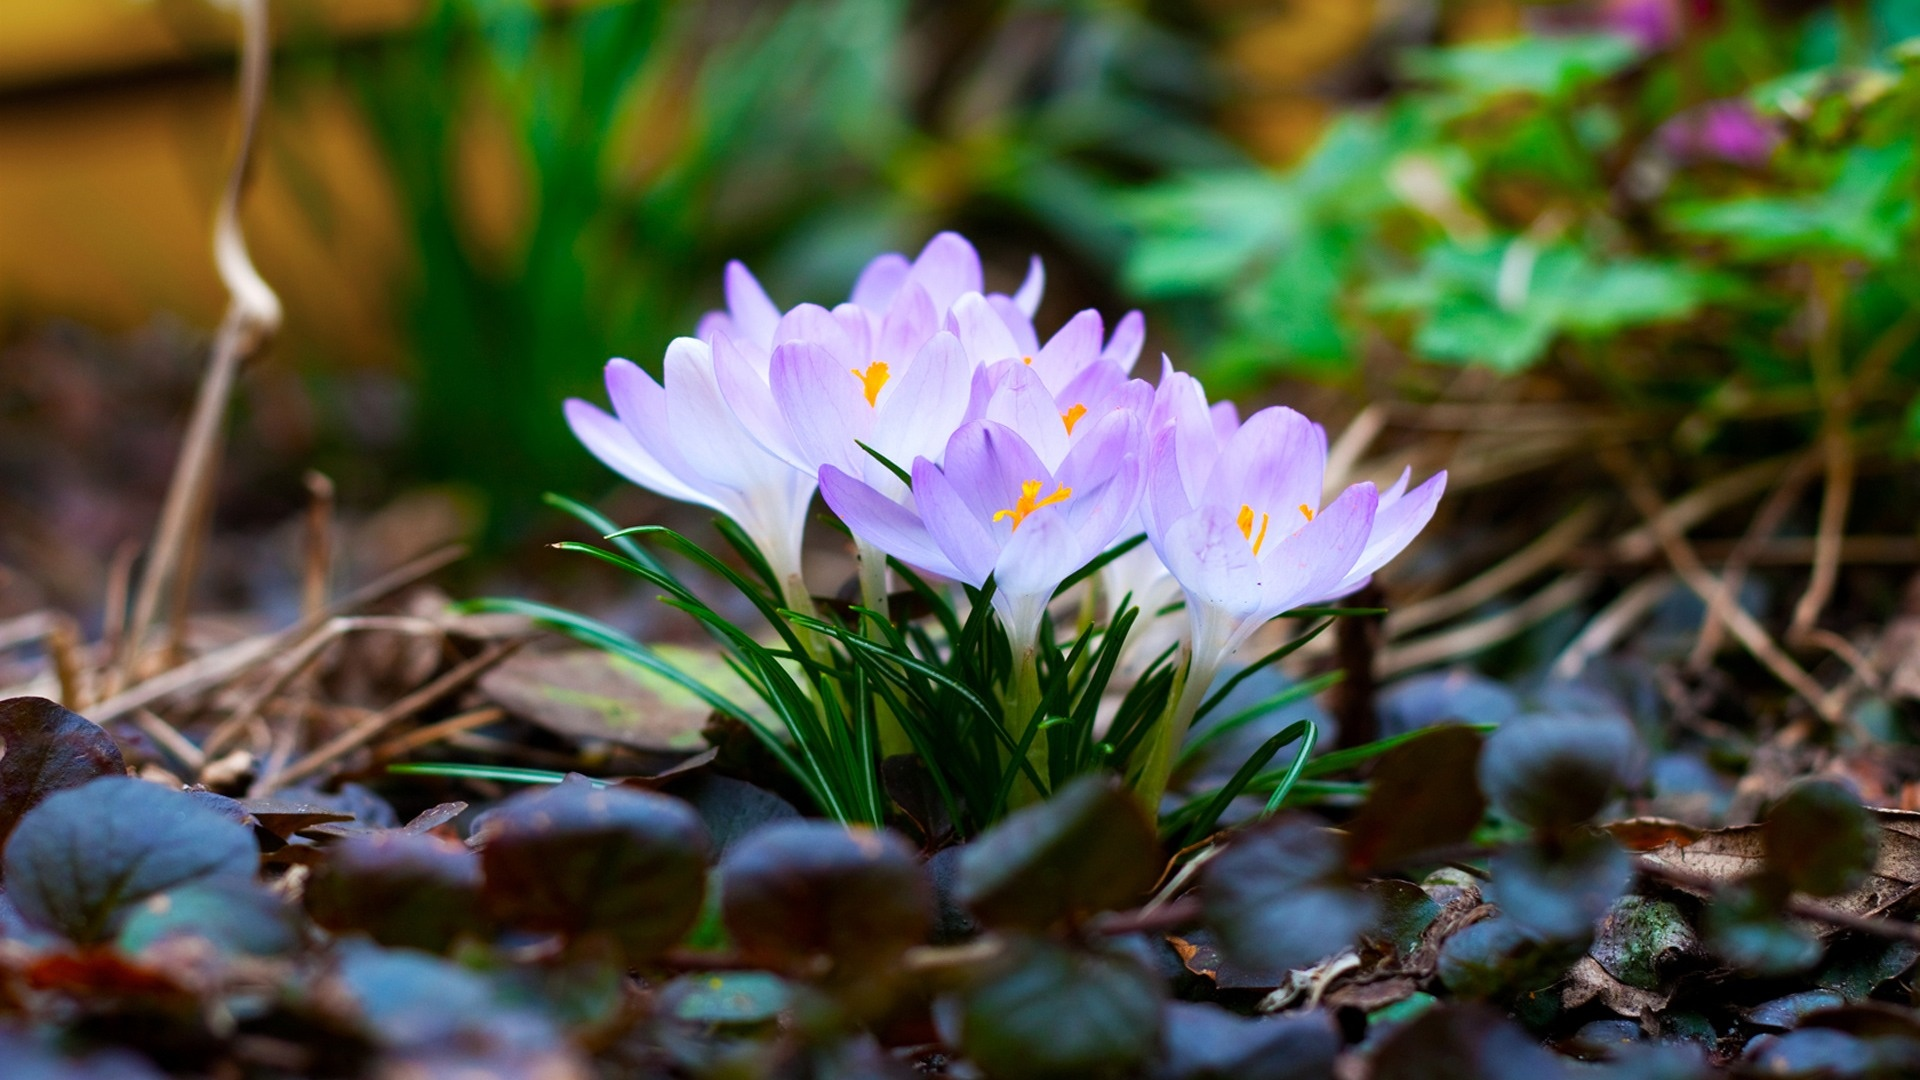 Spring Flowers Pictures For Desktop Flowers Healthy